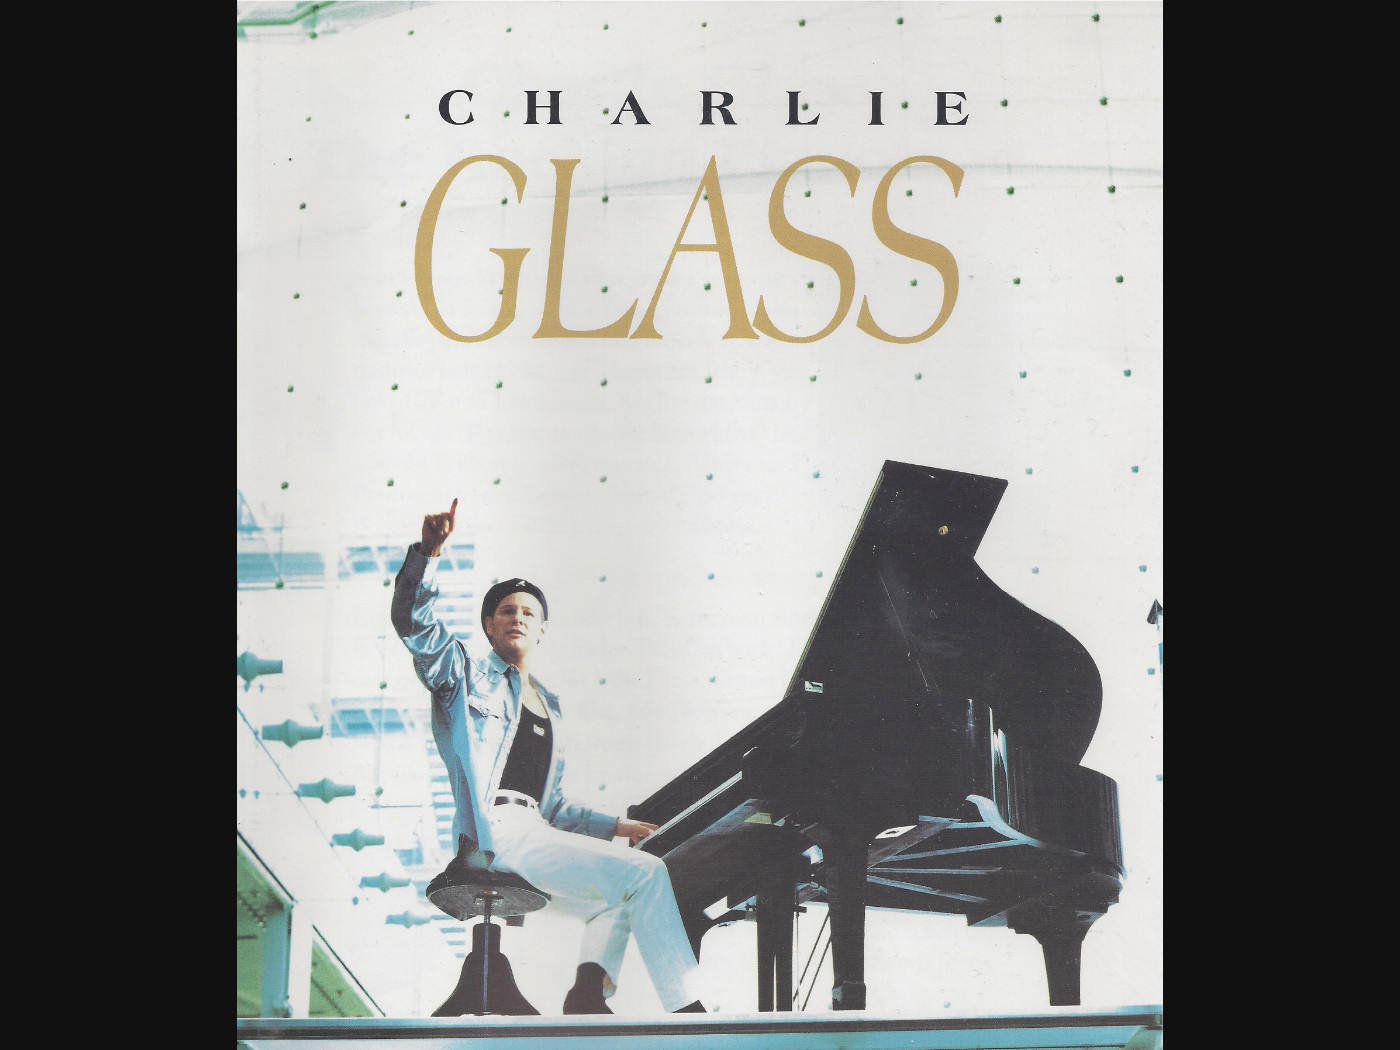 Charlie-Glass-1997.jpg